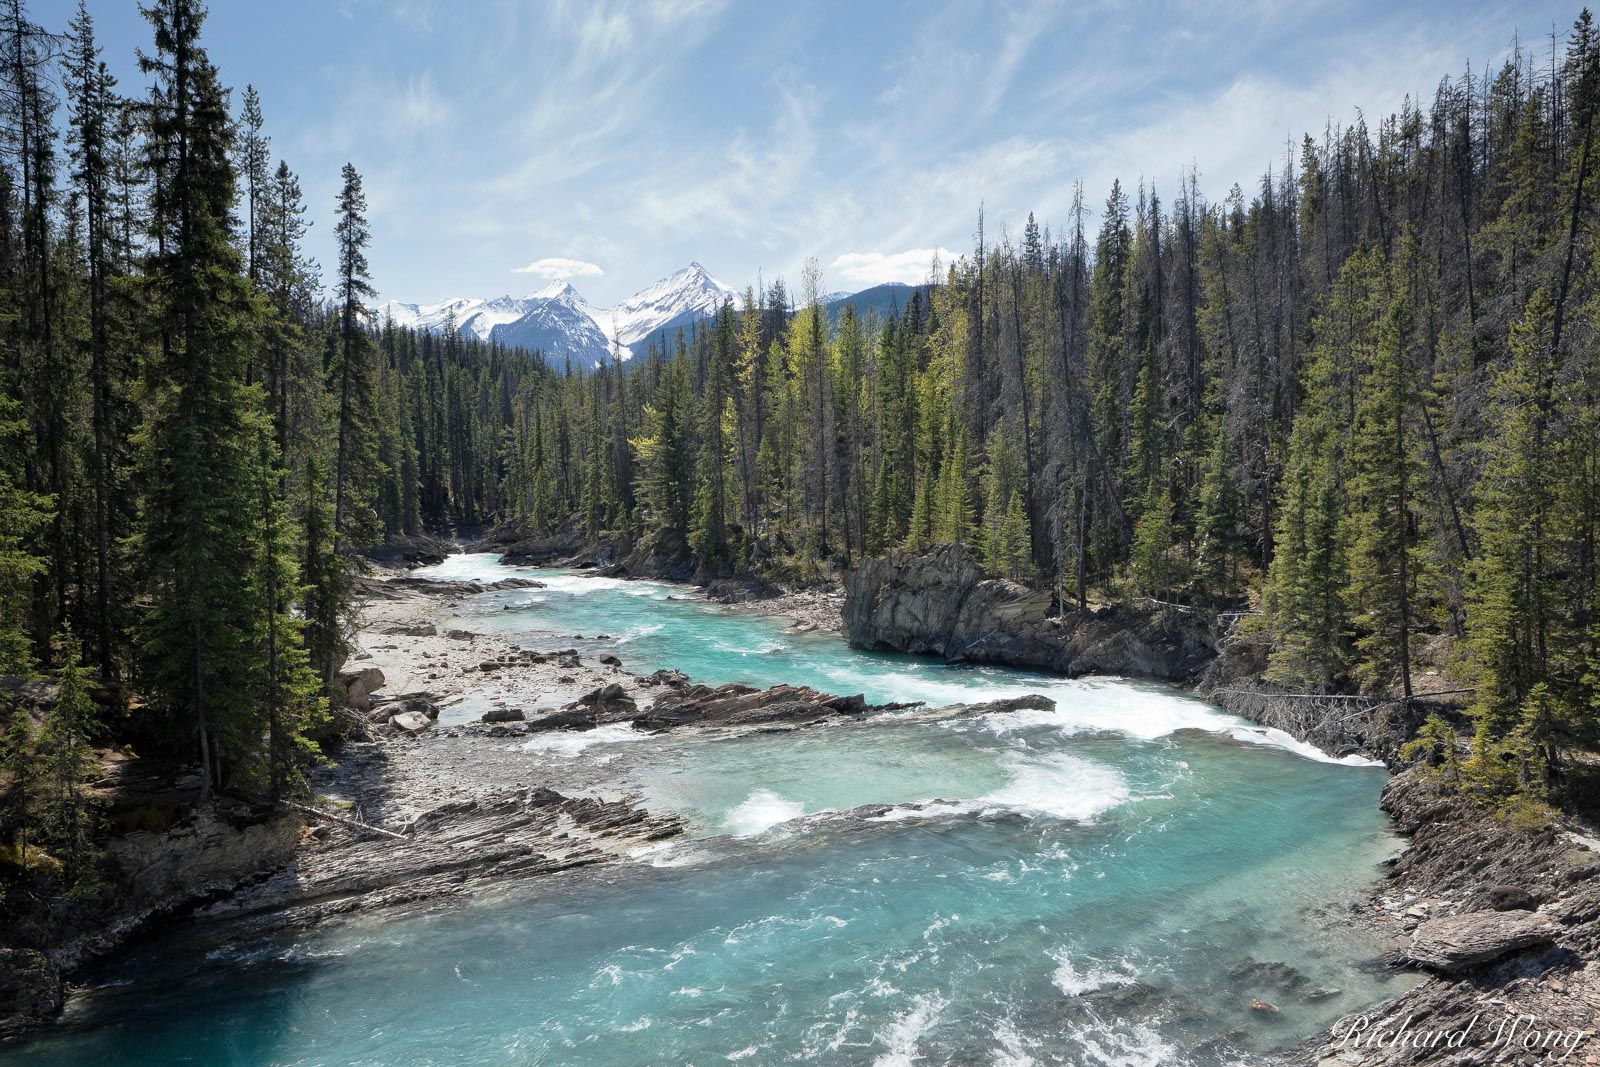 Kicking Horse River, Yoho National Park, British Columbia, Canada, Photo, photo